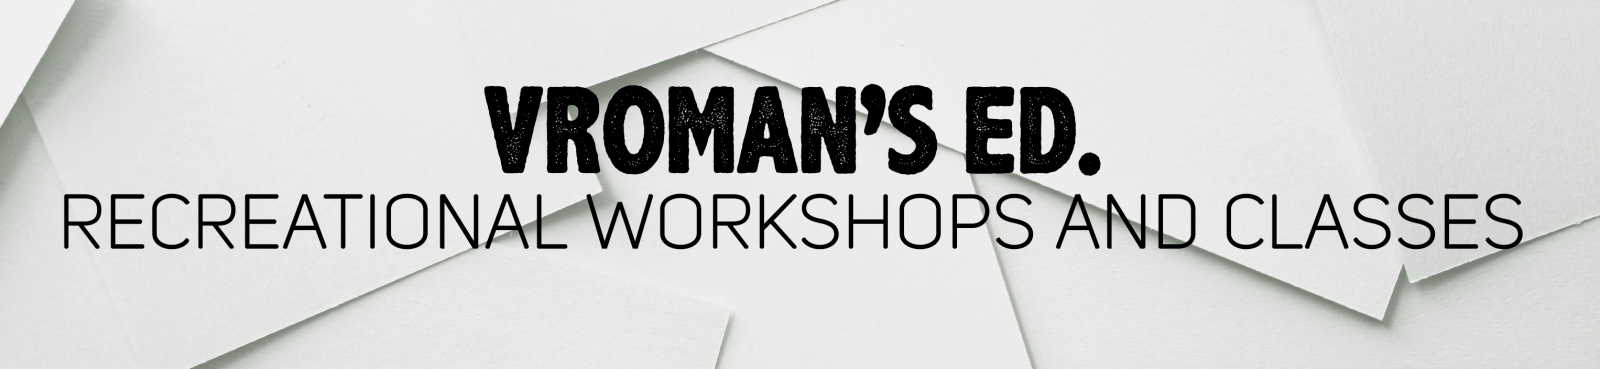 Vroman's Ed Recreational Workshops and Classes